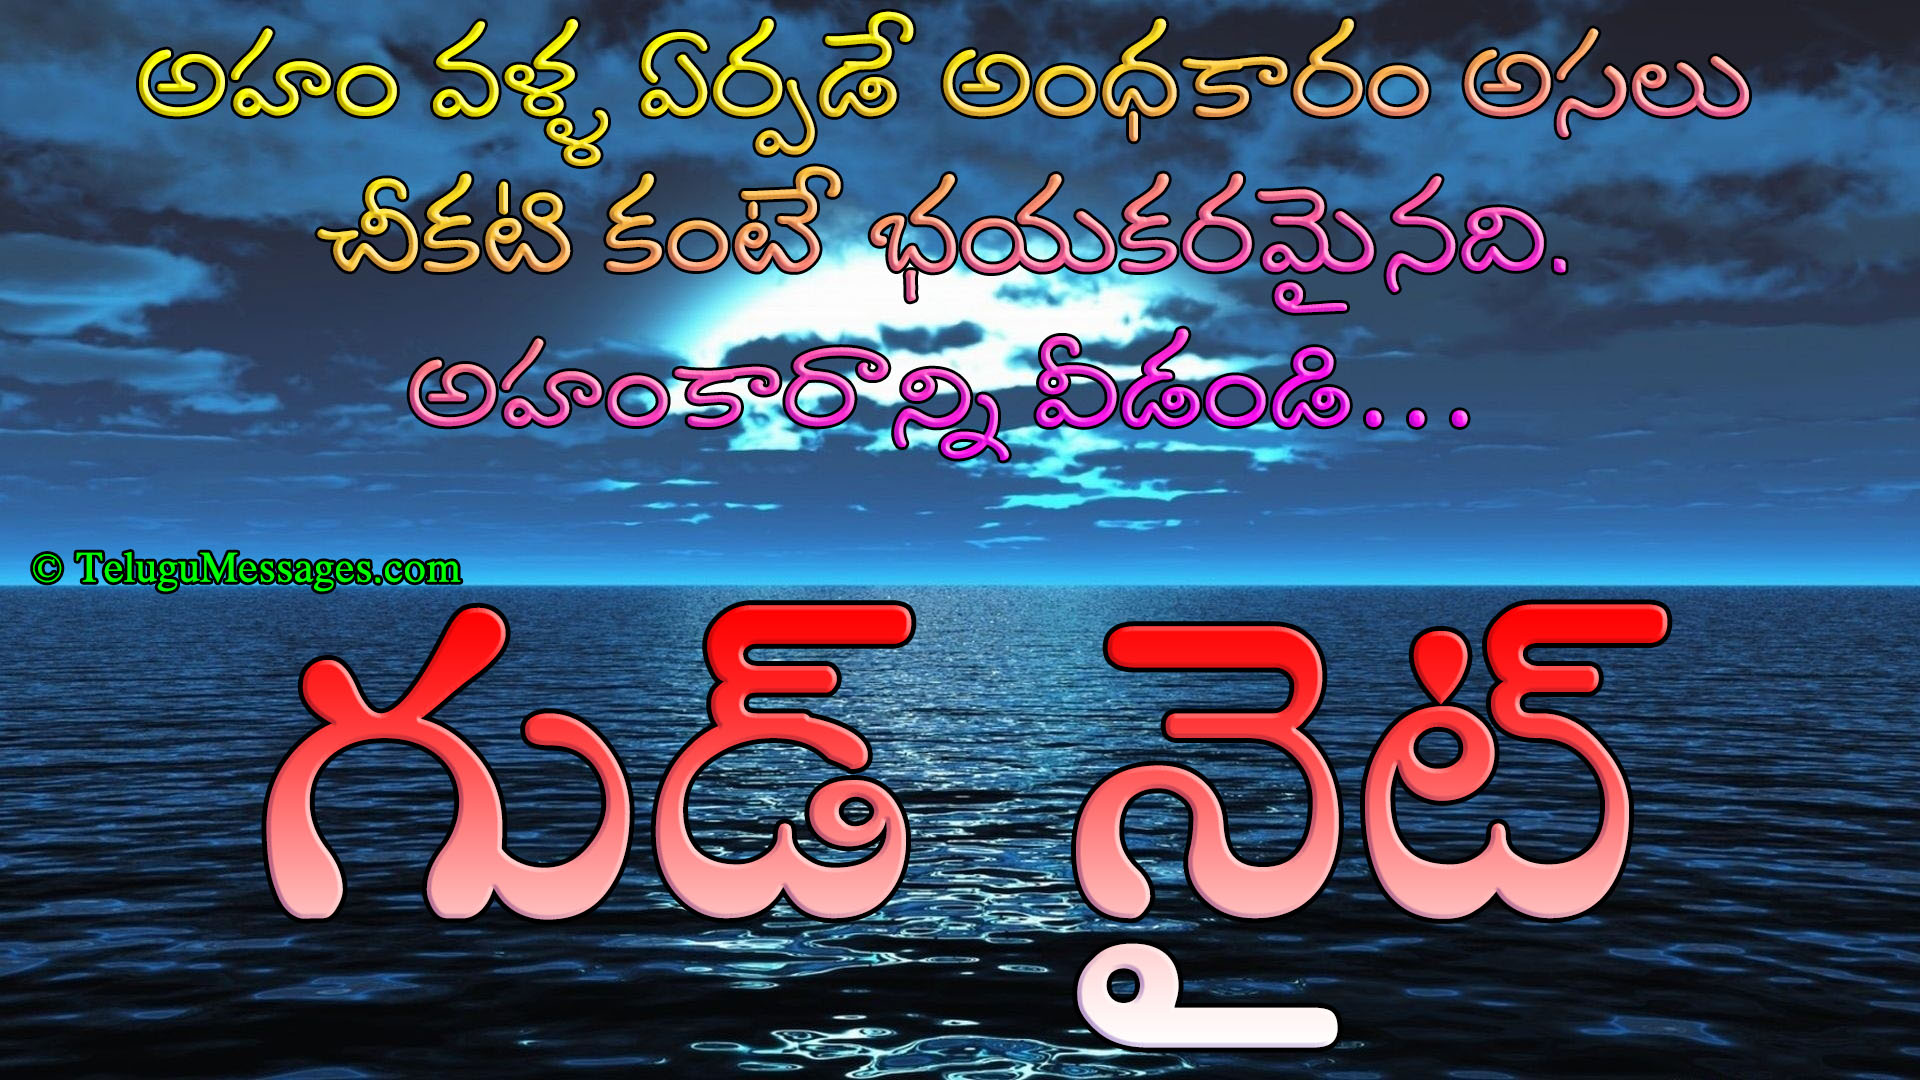 Telugu Good Morning Quotes Good Night Good Evening Pictures Love